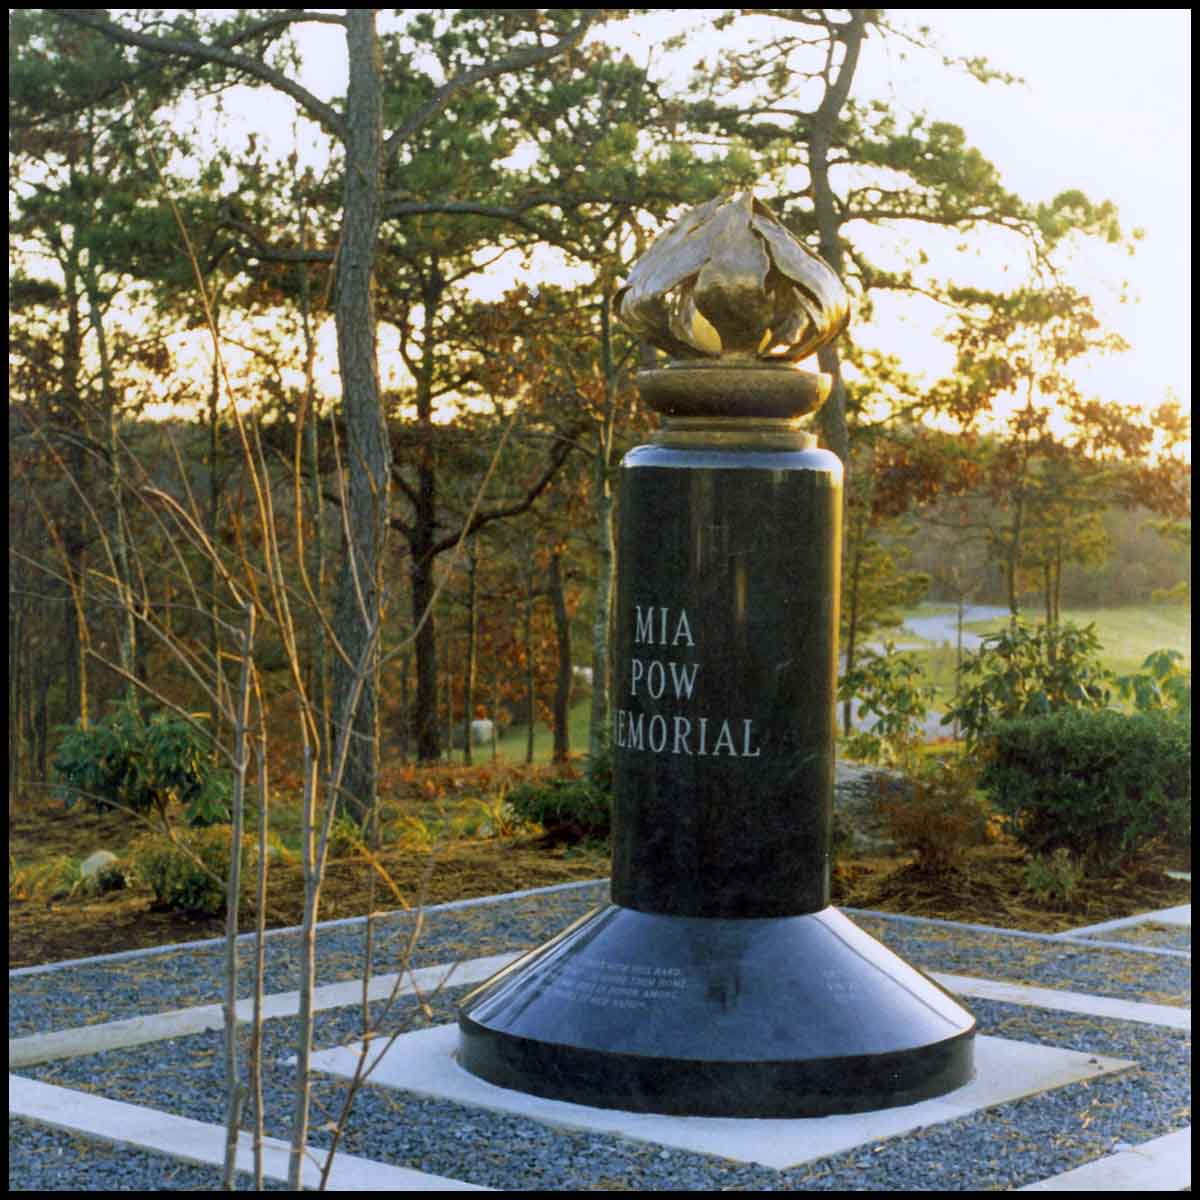 photo of bronze sculpture of flame on black granite base with inscriptions in hardscaped area with surrounding trees and greenery